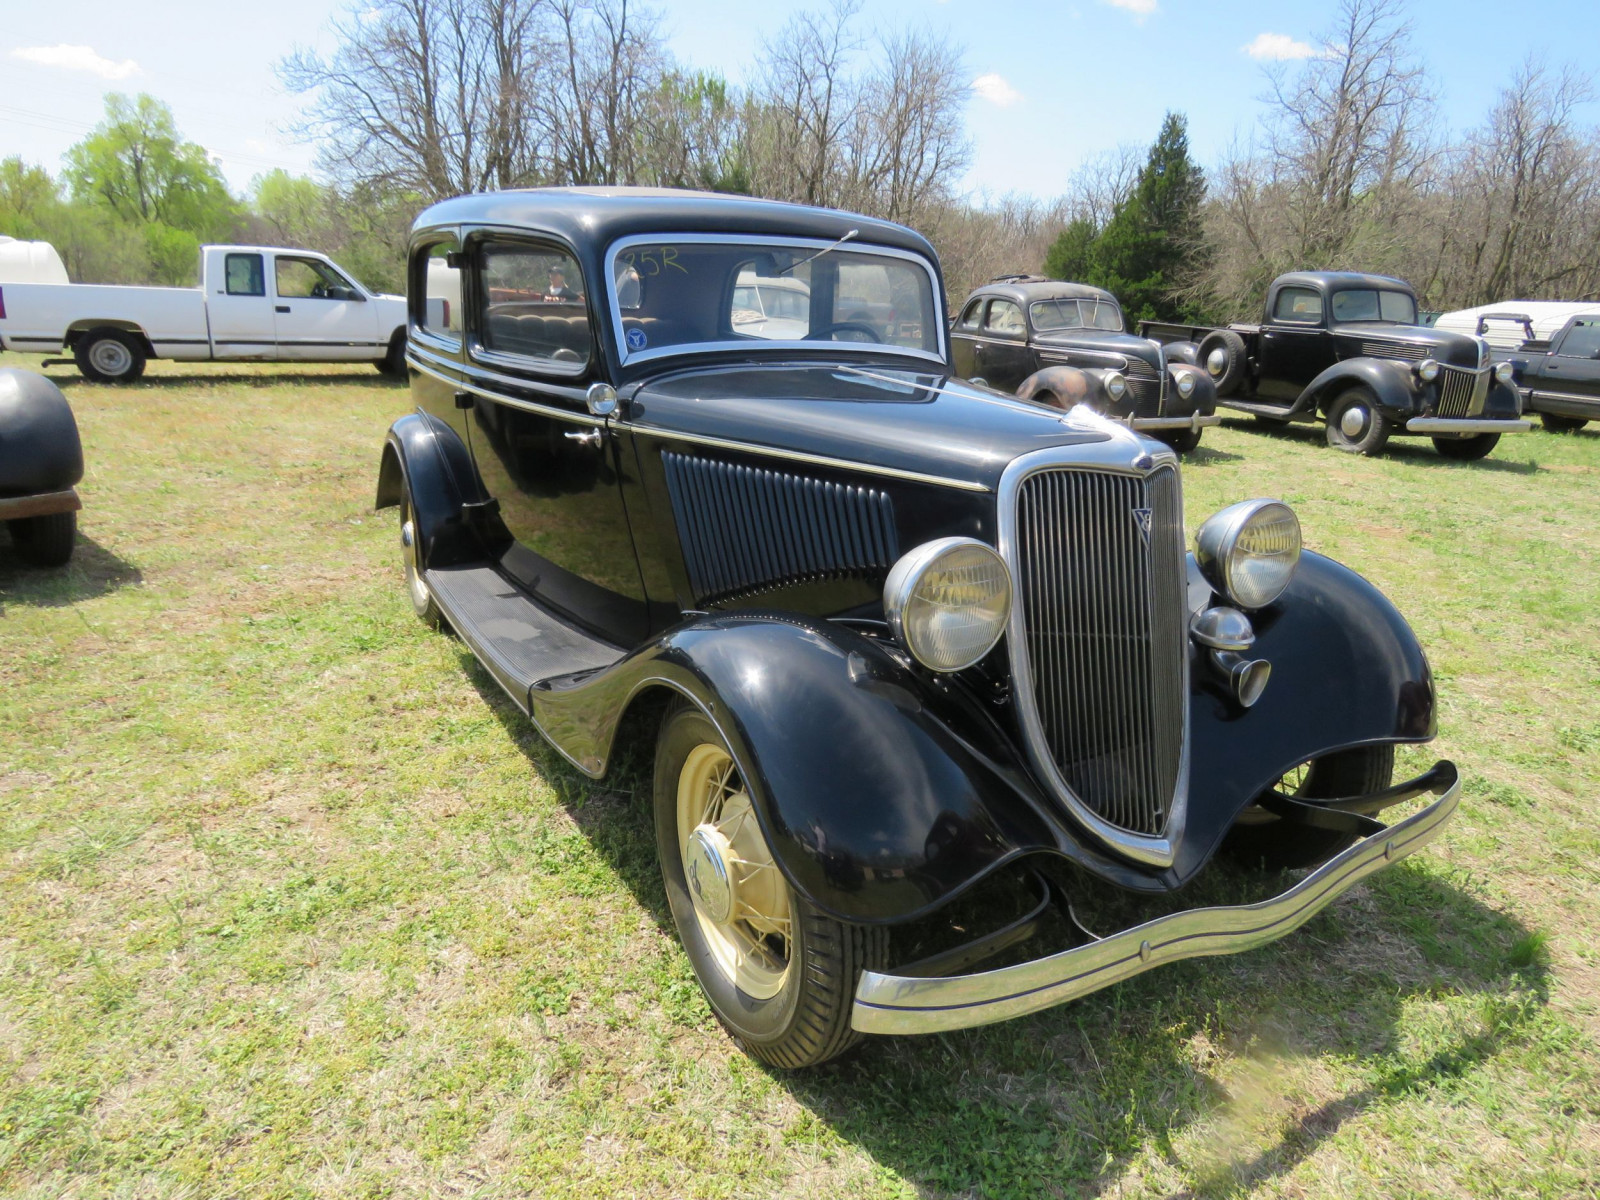 1934 FORD TUDOR SEDAN - Image 1